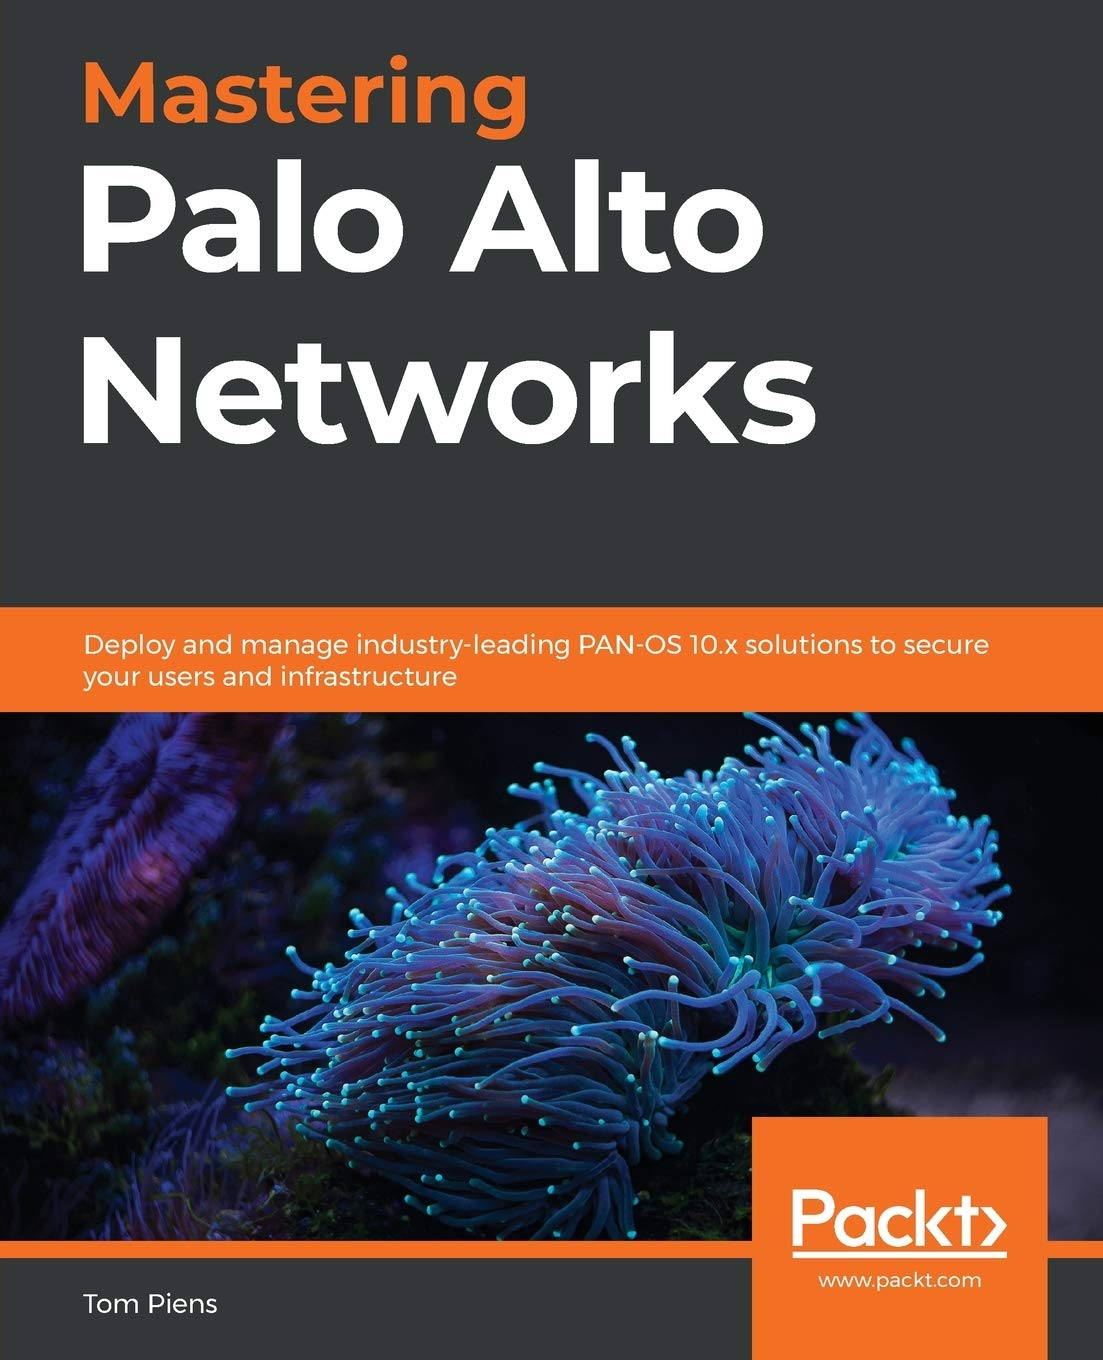 Image OfMastering Palo Alto Networks: Deploy And Manage Industry-leading PAN-OS 10.x Solutions To Secure Your Users And Infrastruc...